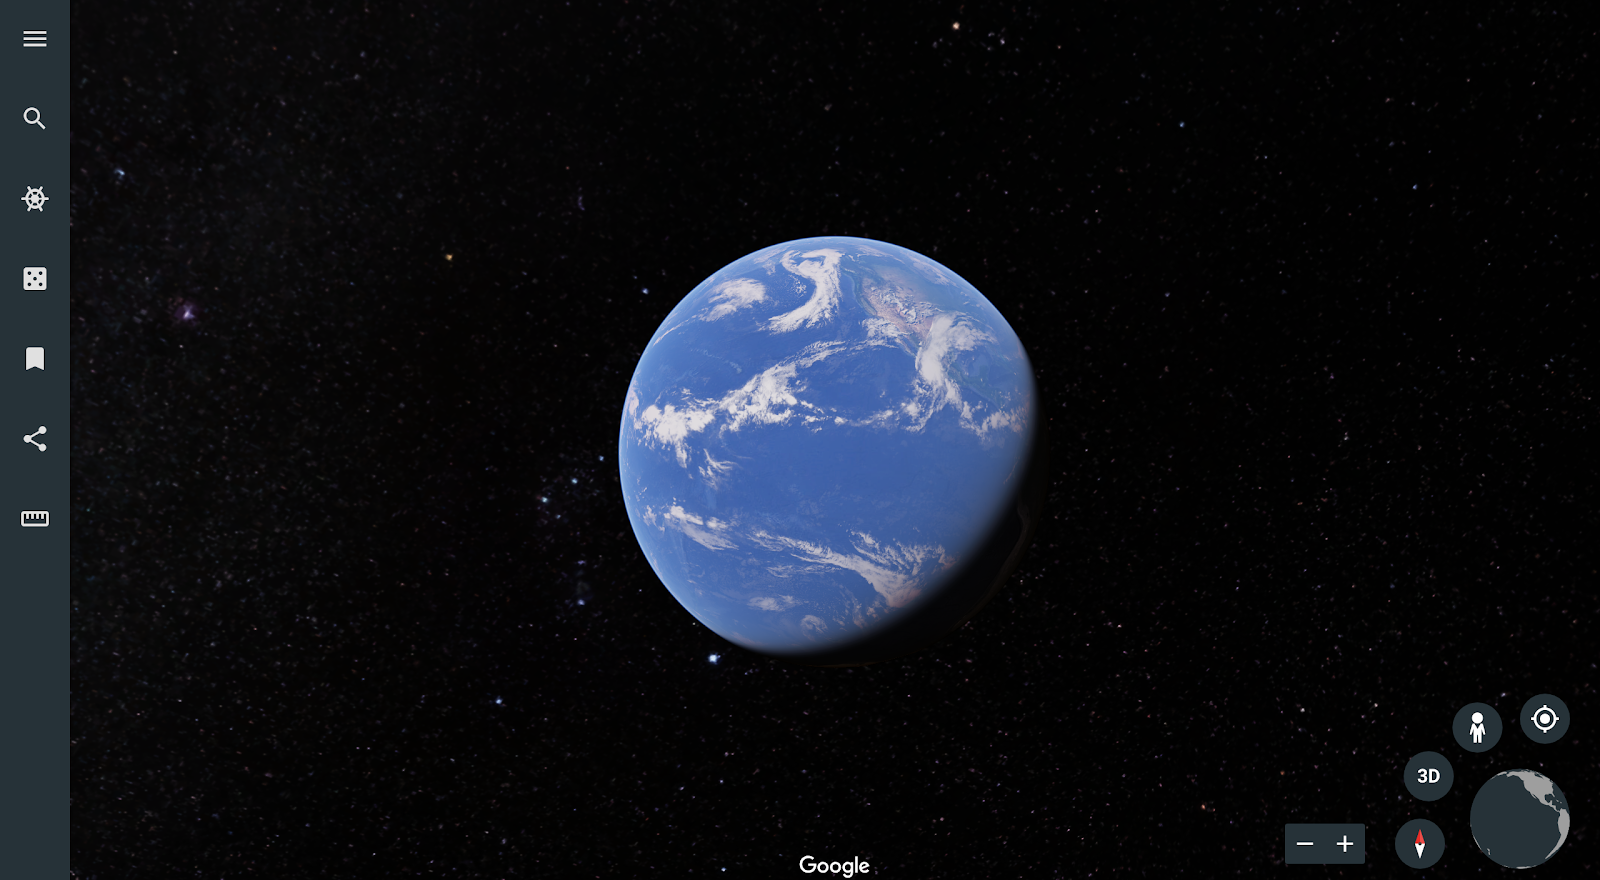 google-earth-geolocator-button